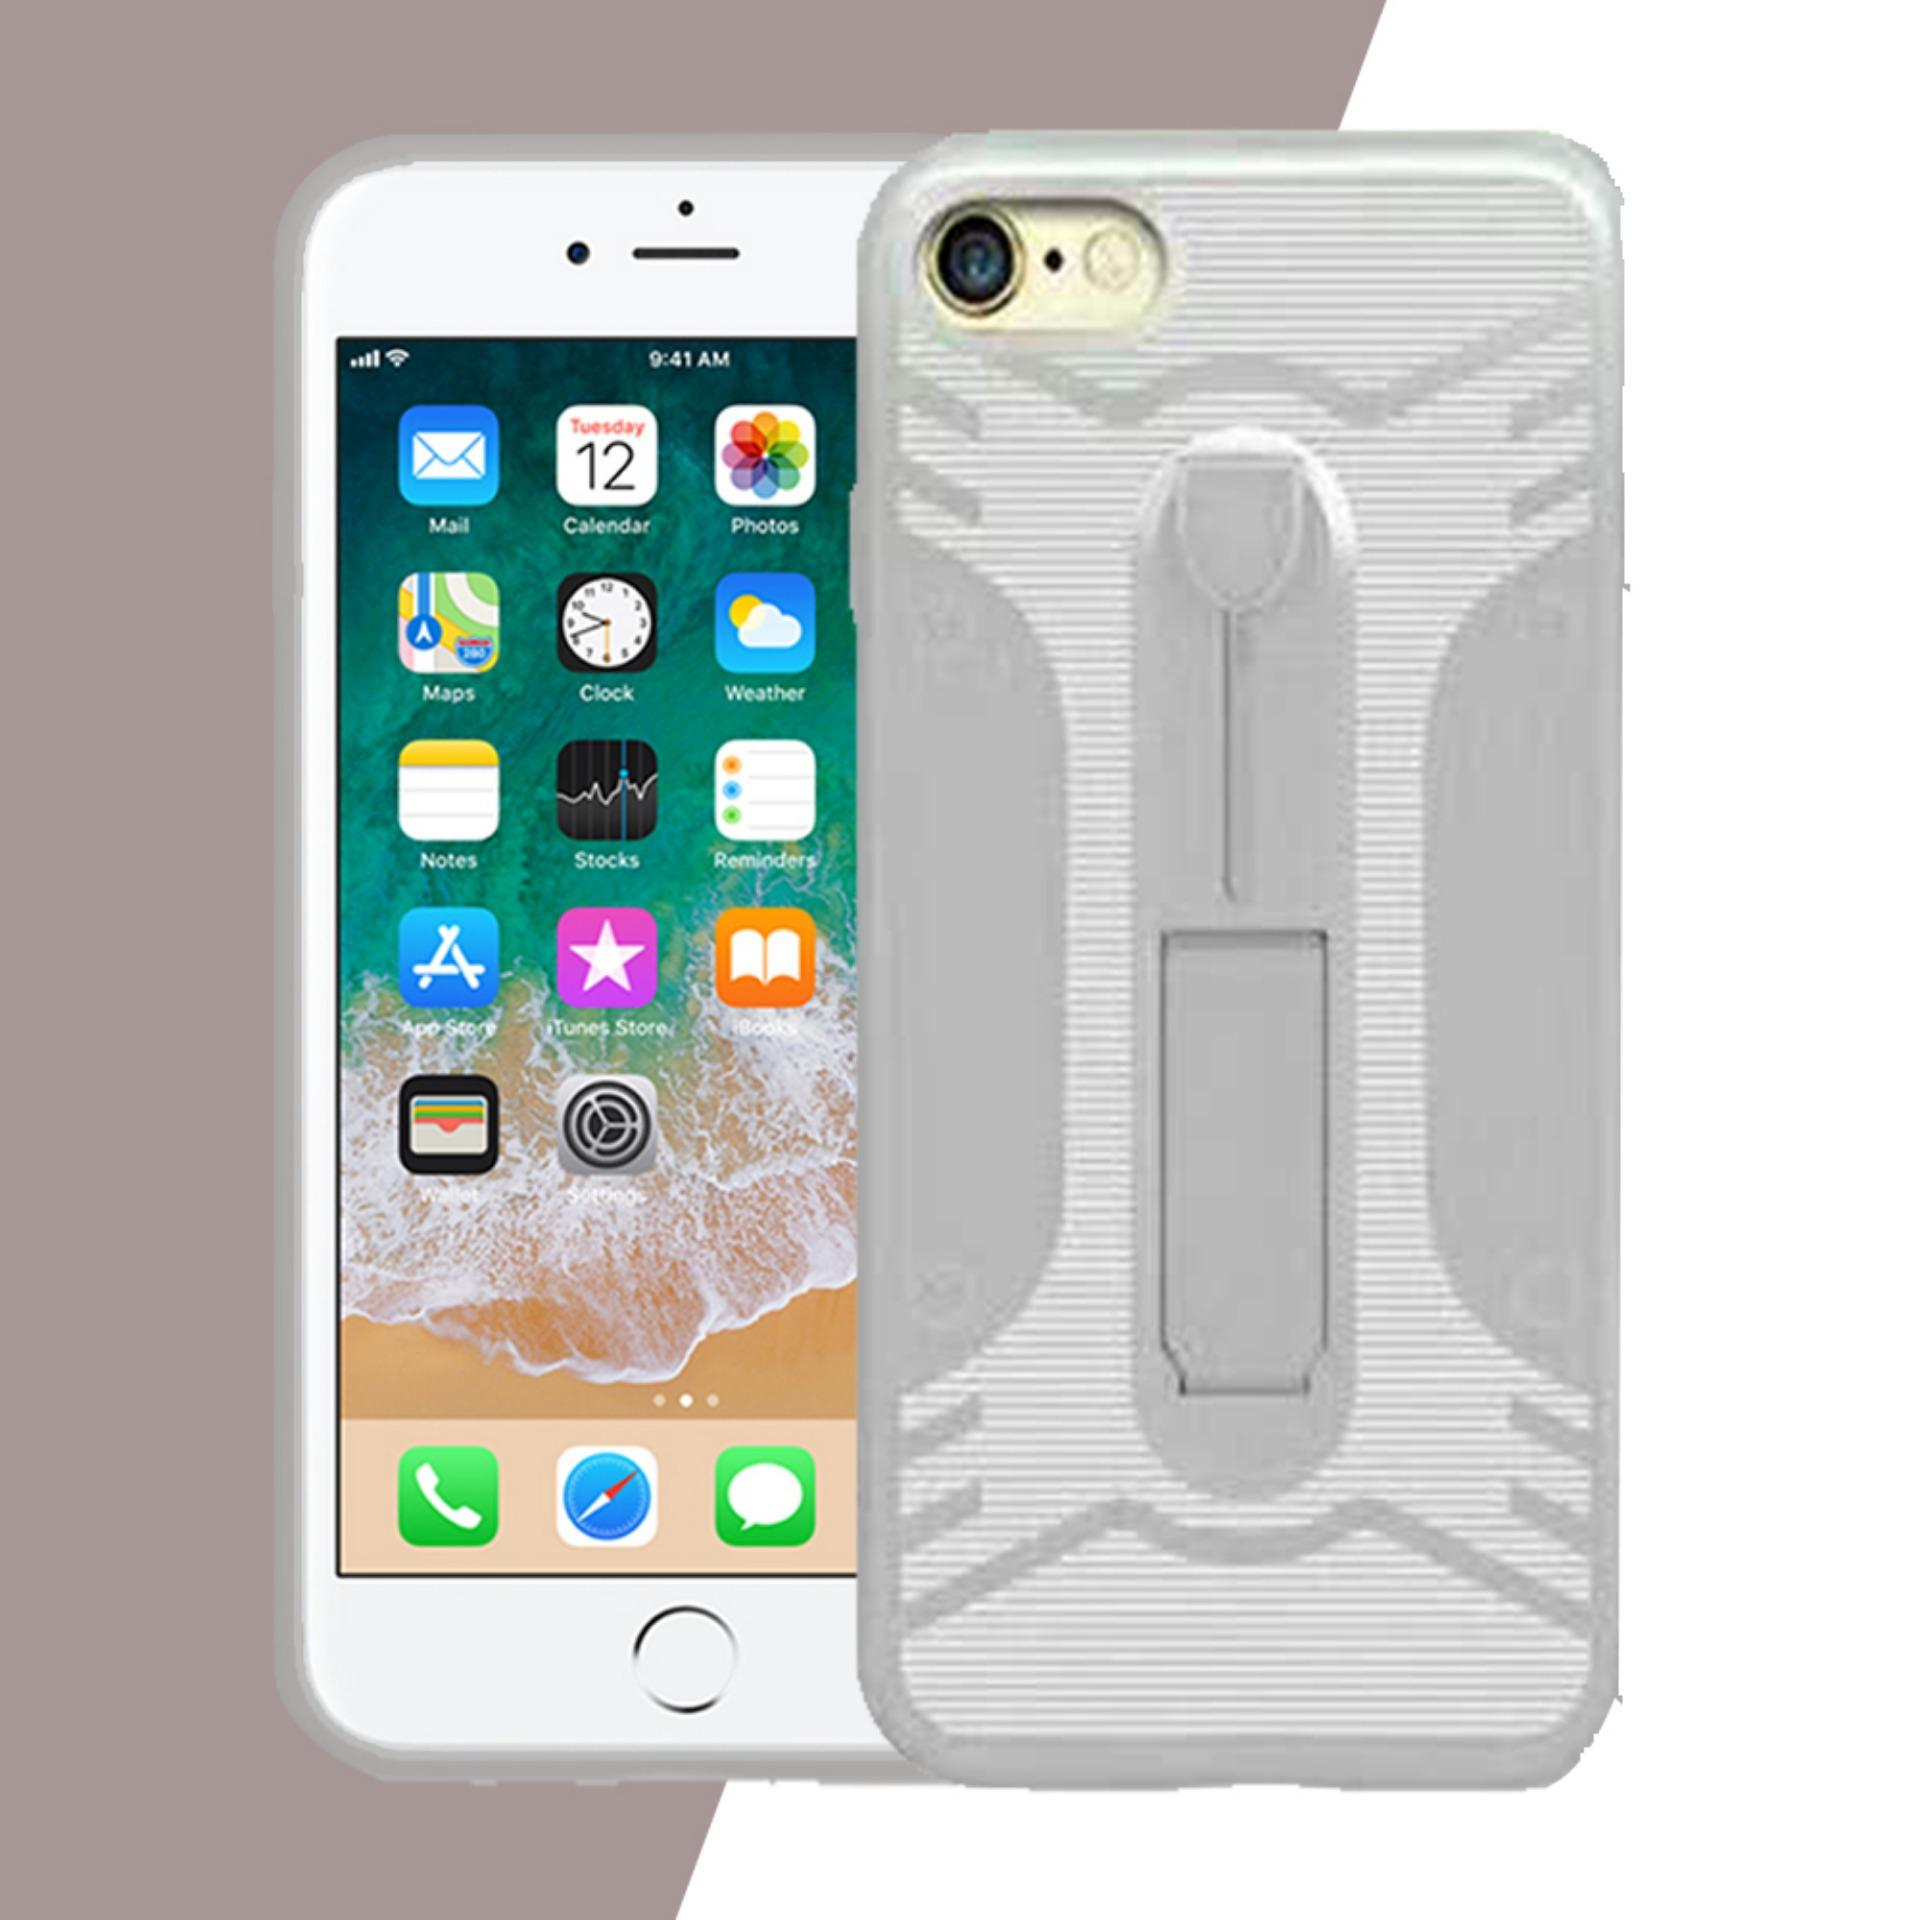 Case Iphone 5 Conure 3in1 Smart Grip COCOSE IPAKY Drop resistance anti Shock Silicone Cover